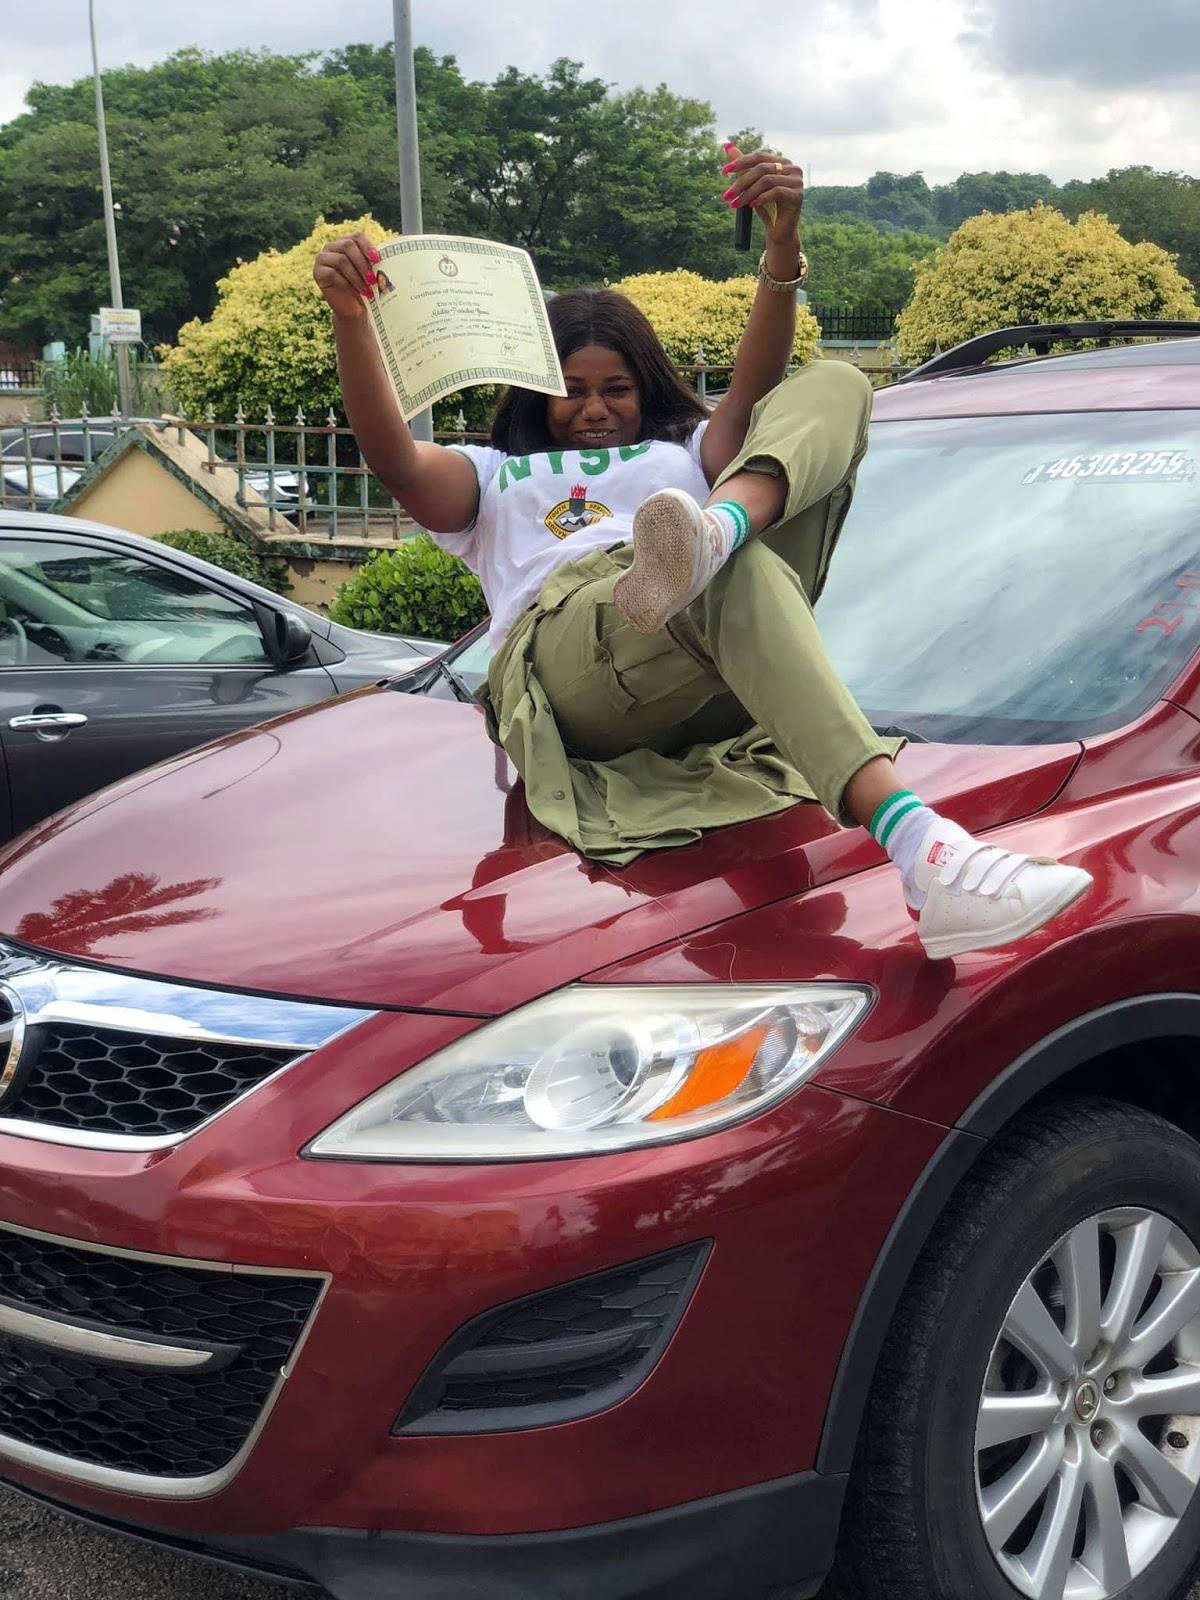 Lady%2Bbuys%2Bherself%2Ban%2BSUV%2Bto%2Bcelebrate%2Bpassing%2Bout%2Bof%2BNYSC%2B2 - Woman buys herself an SUV to rejoice passing out of NYSC